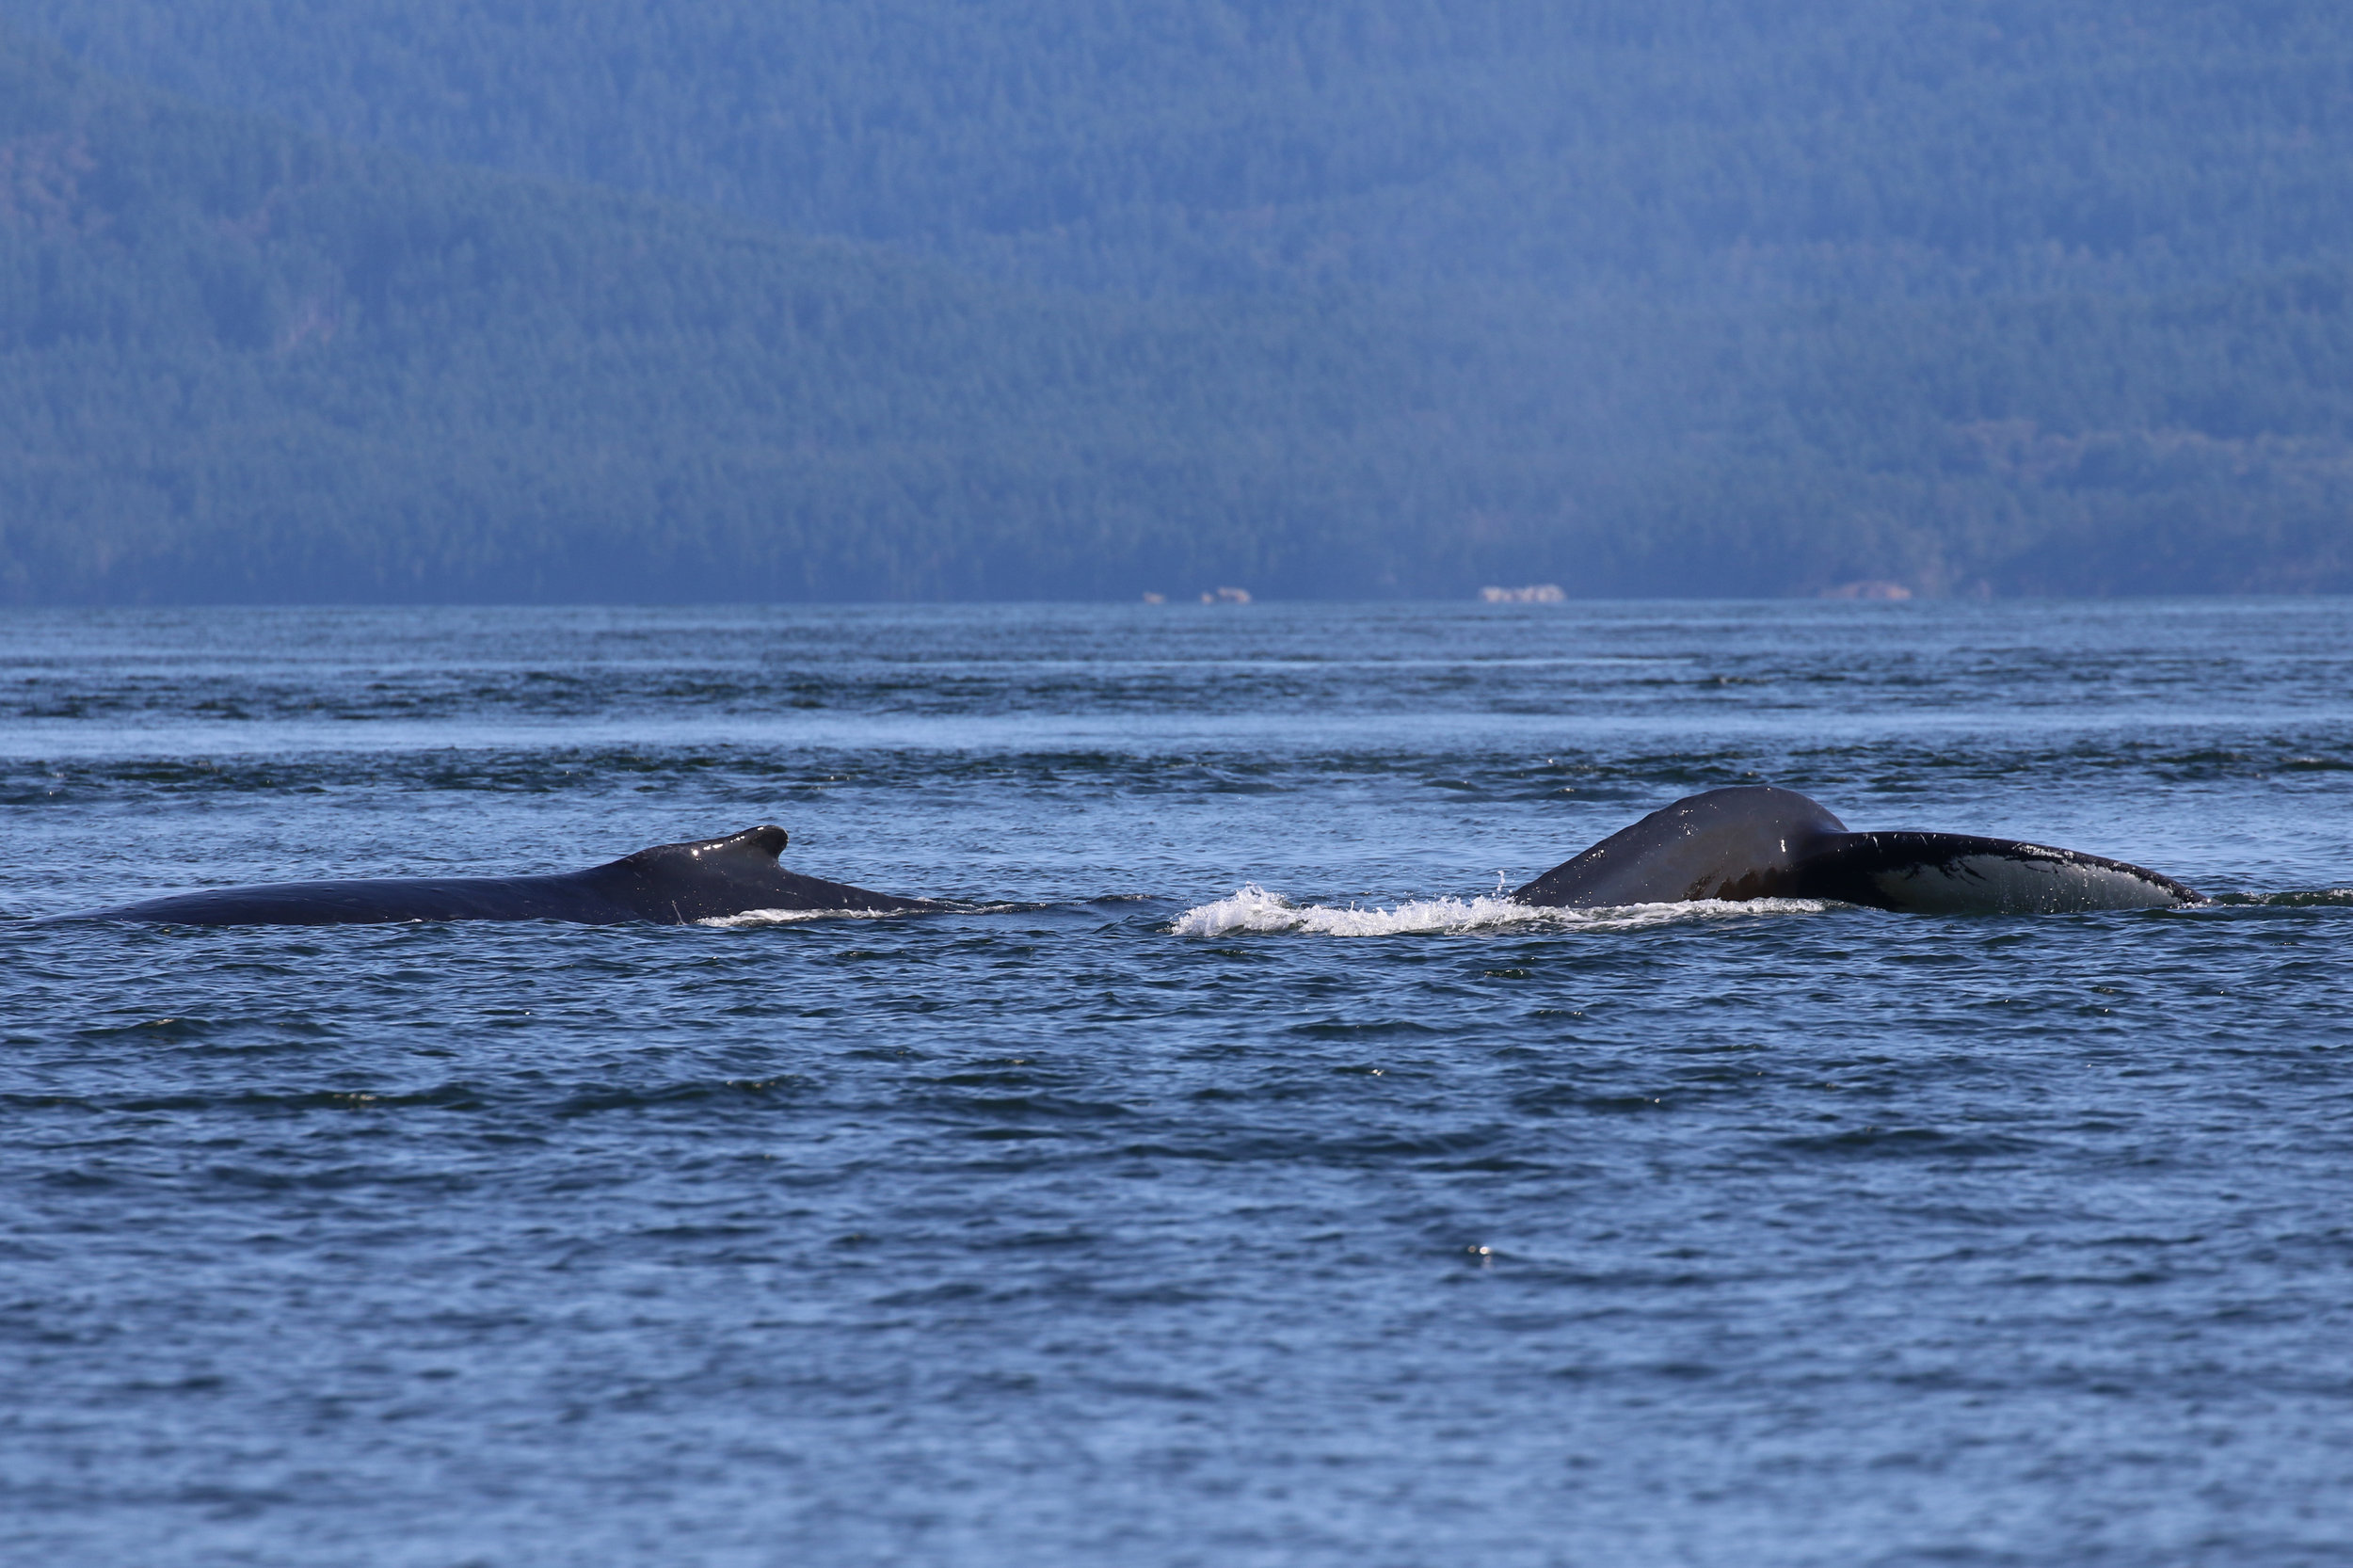 Stike (left) and Two Spot (right) at the surface together. Photo by Val Watson.